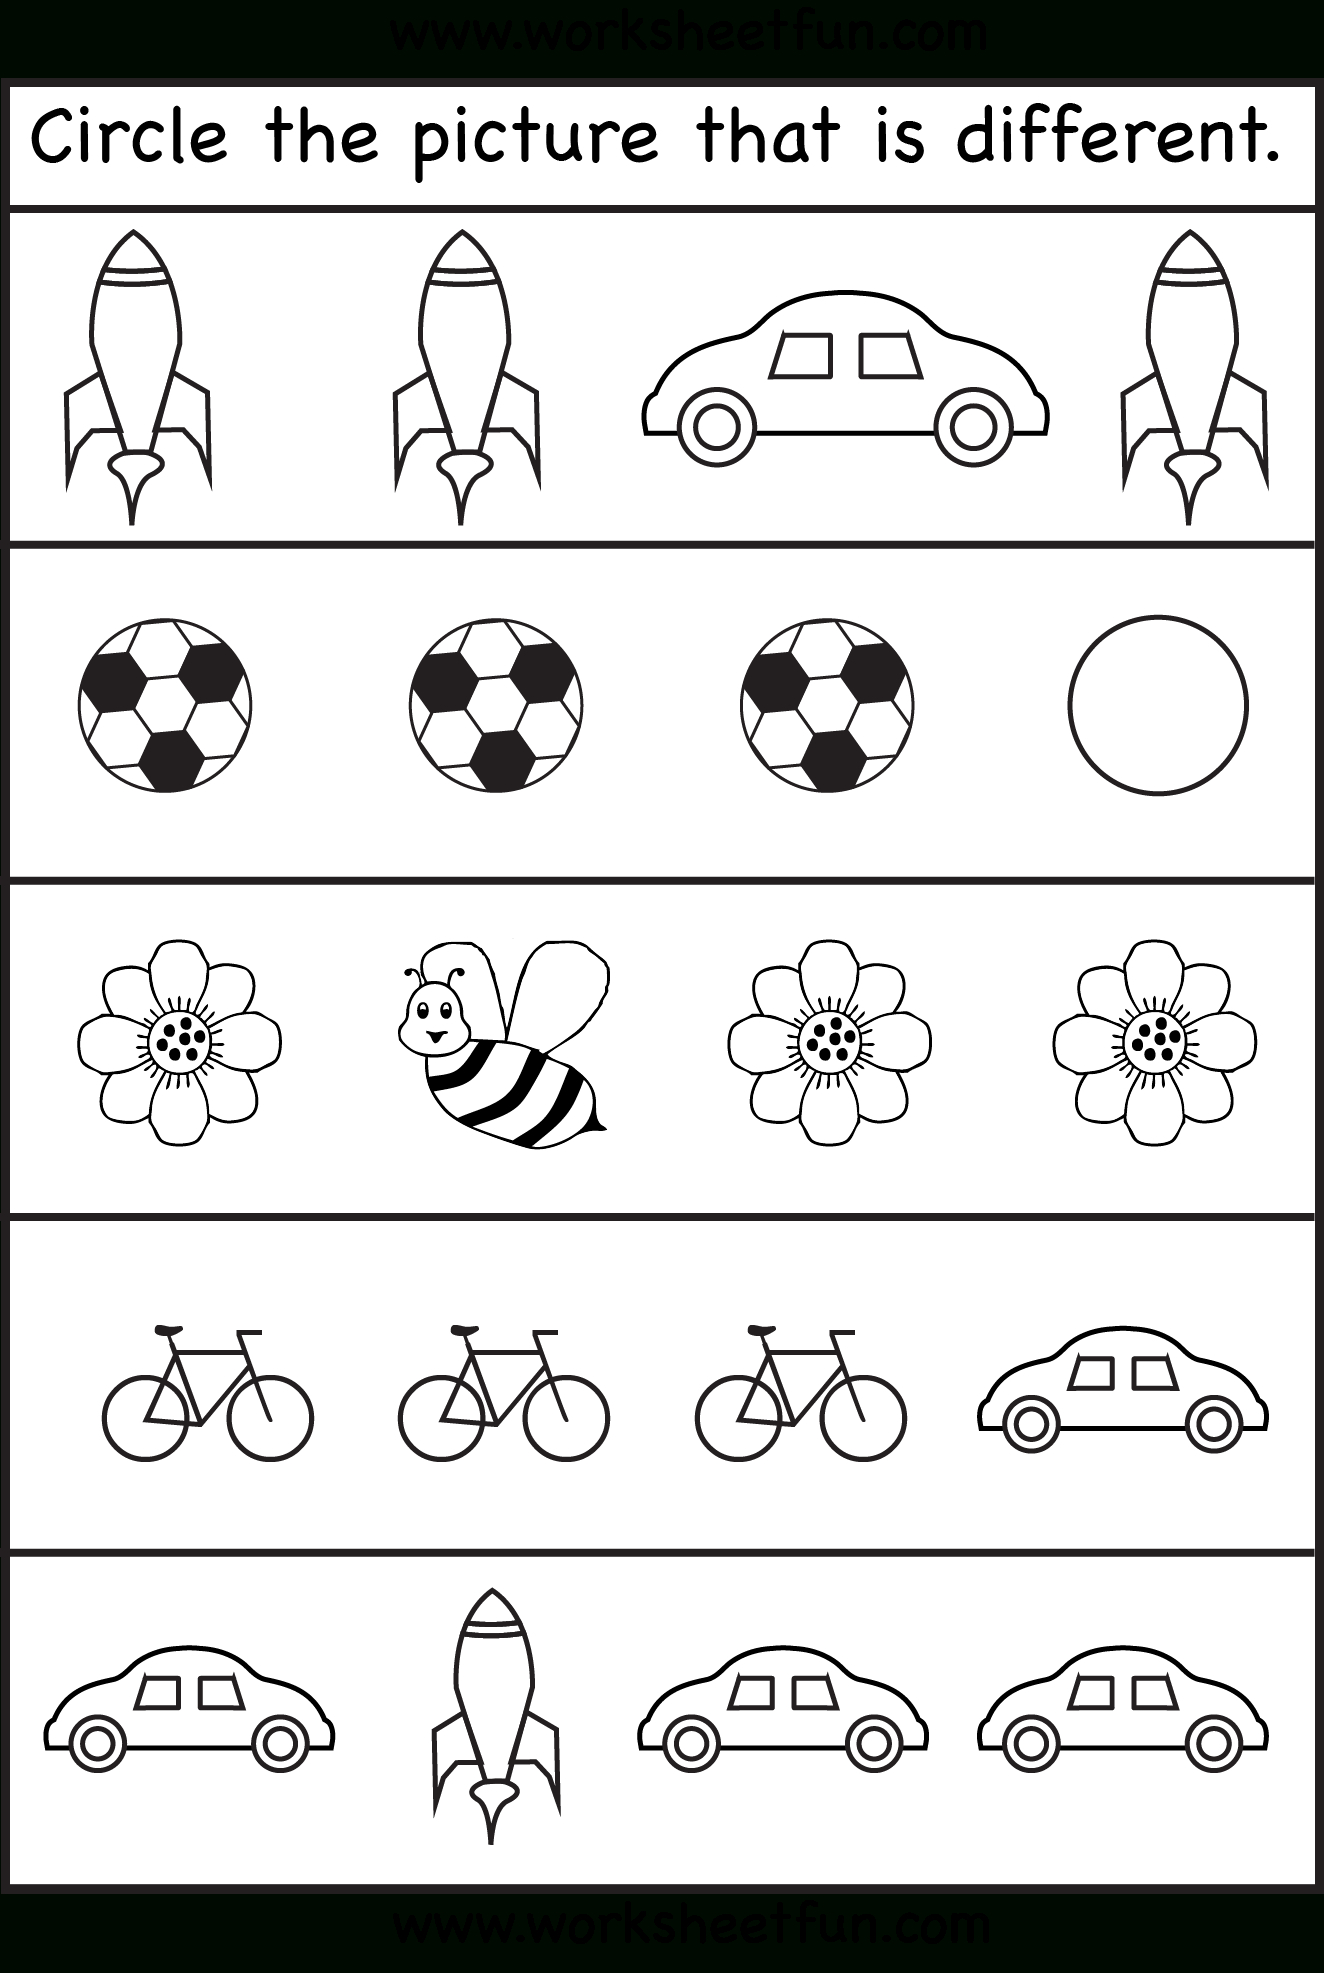 Circle The Picture That Is Different - 4 Worksheets | Preschool Work - Free Printable Toddler Worksheets